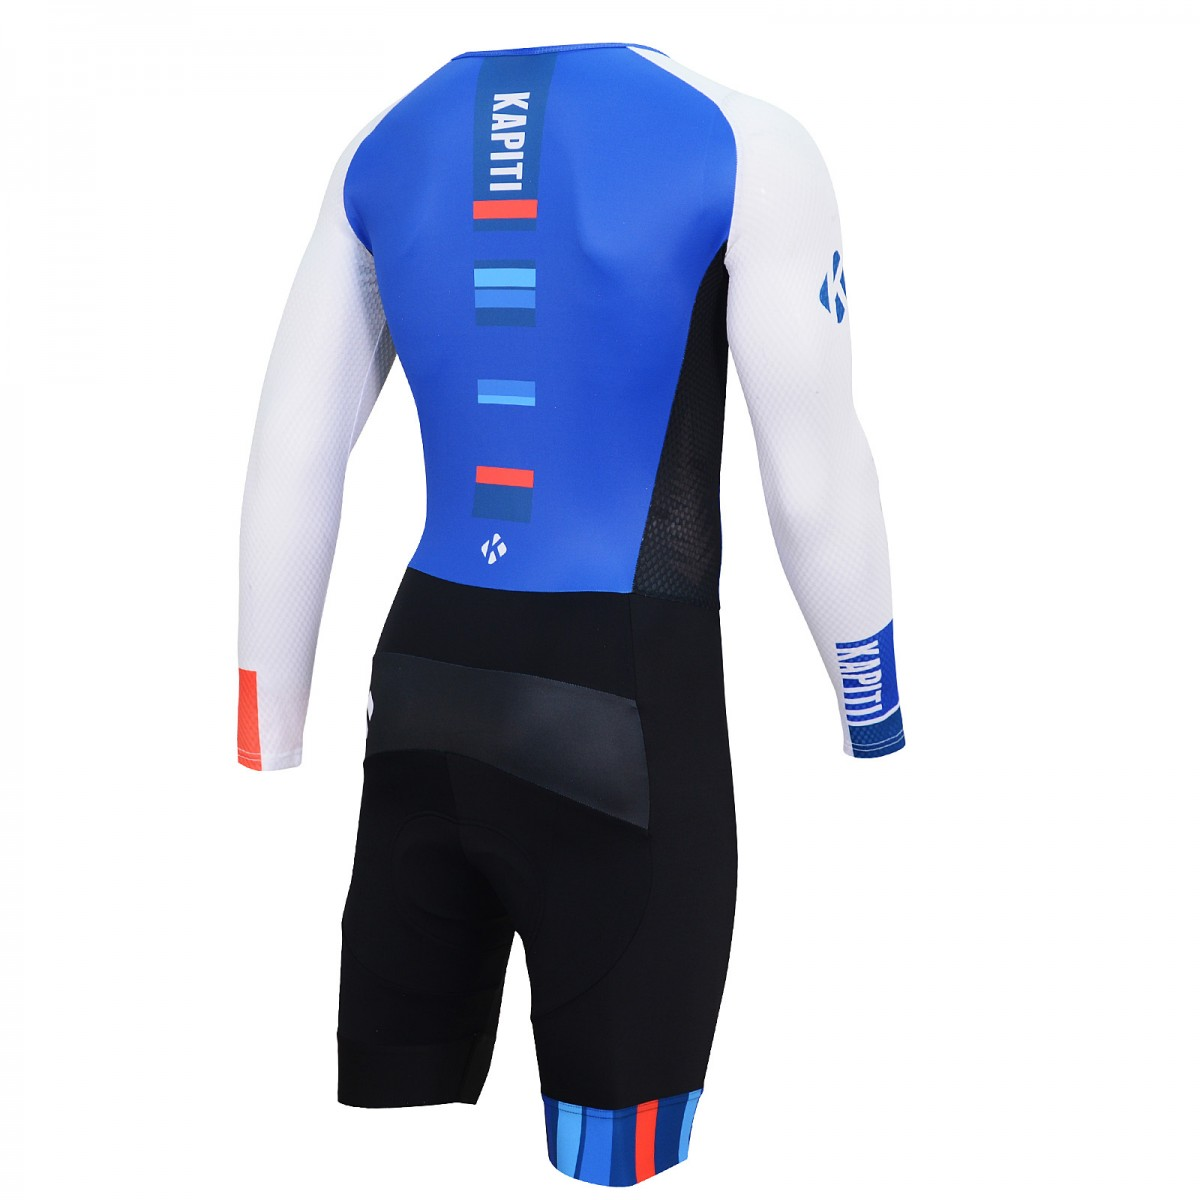 SSTM0004 SSSM1021 C Rear Long Sleeve Speedsuit